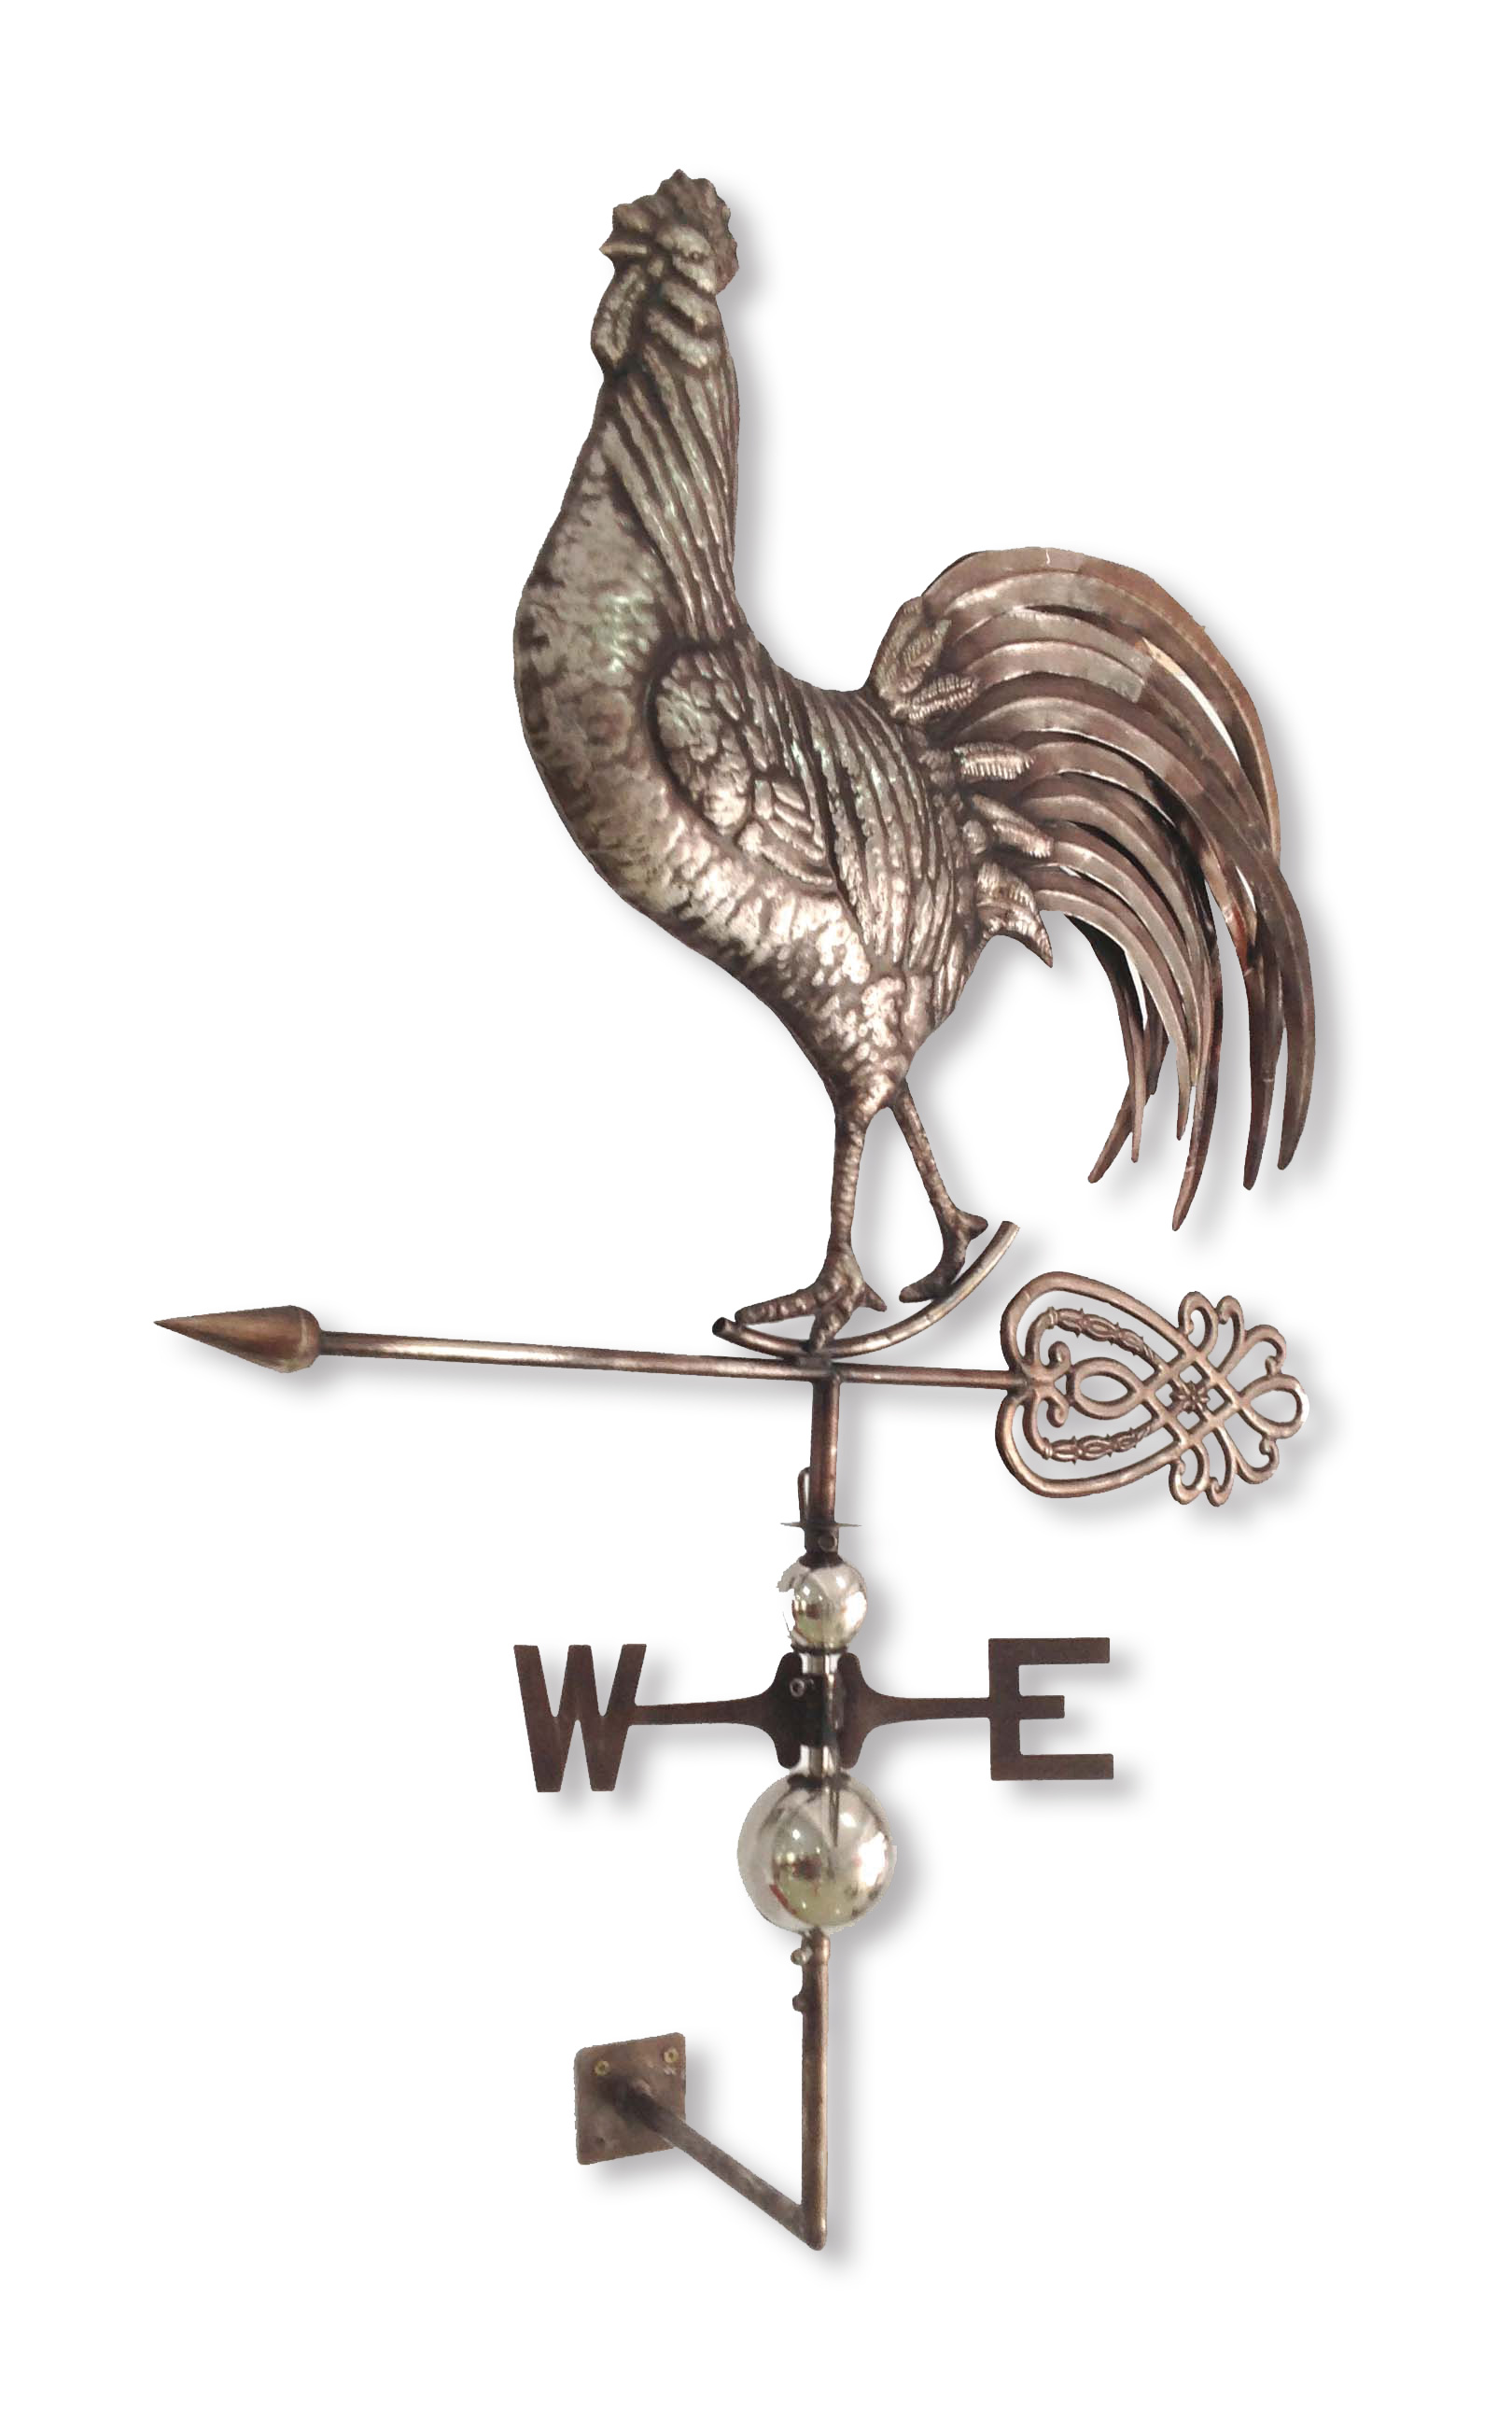 100% Stainless Steel Crowing Rooster Weathervane by Backyard Expressions